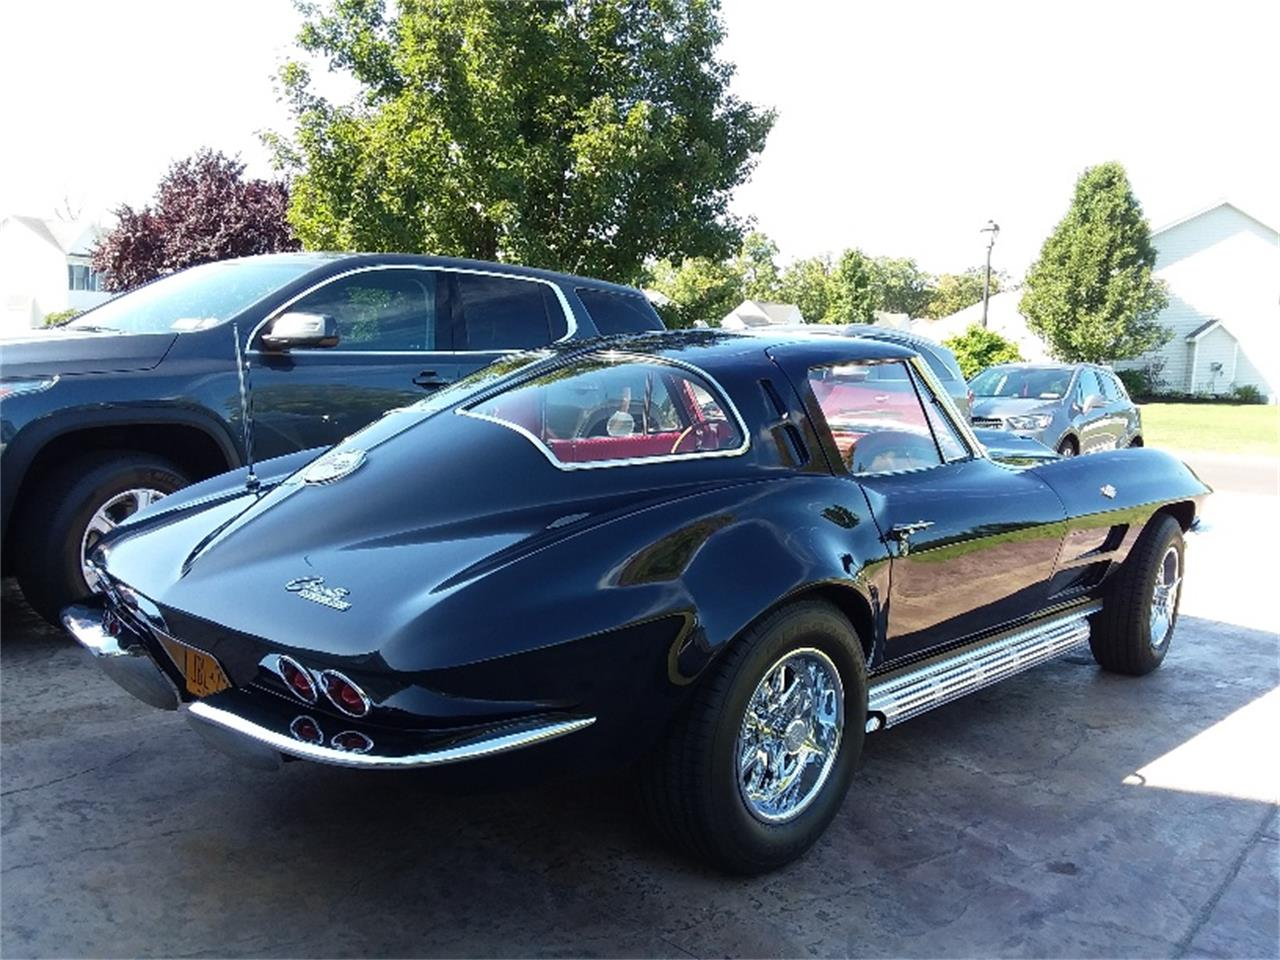 1963 Chevrolet Corvette (CC-1267429) for sale in Spencerport, New York